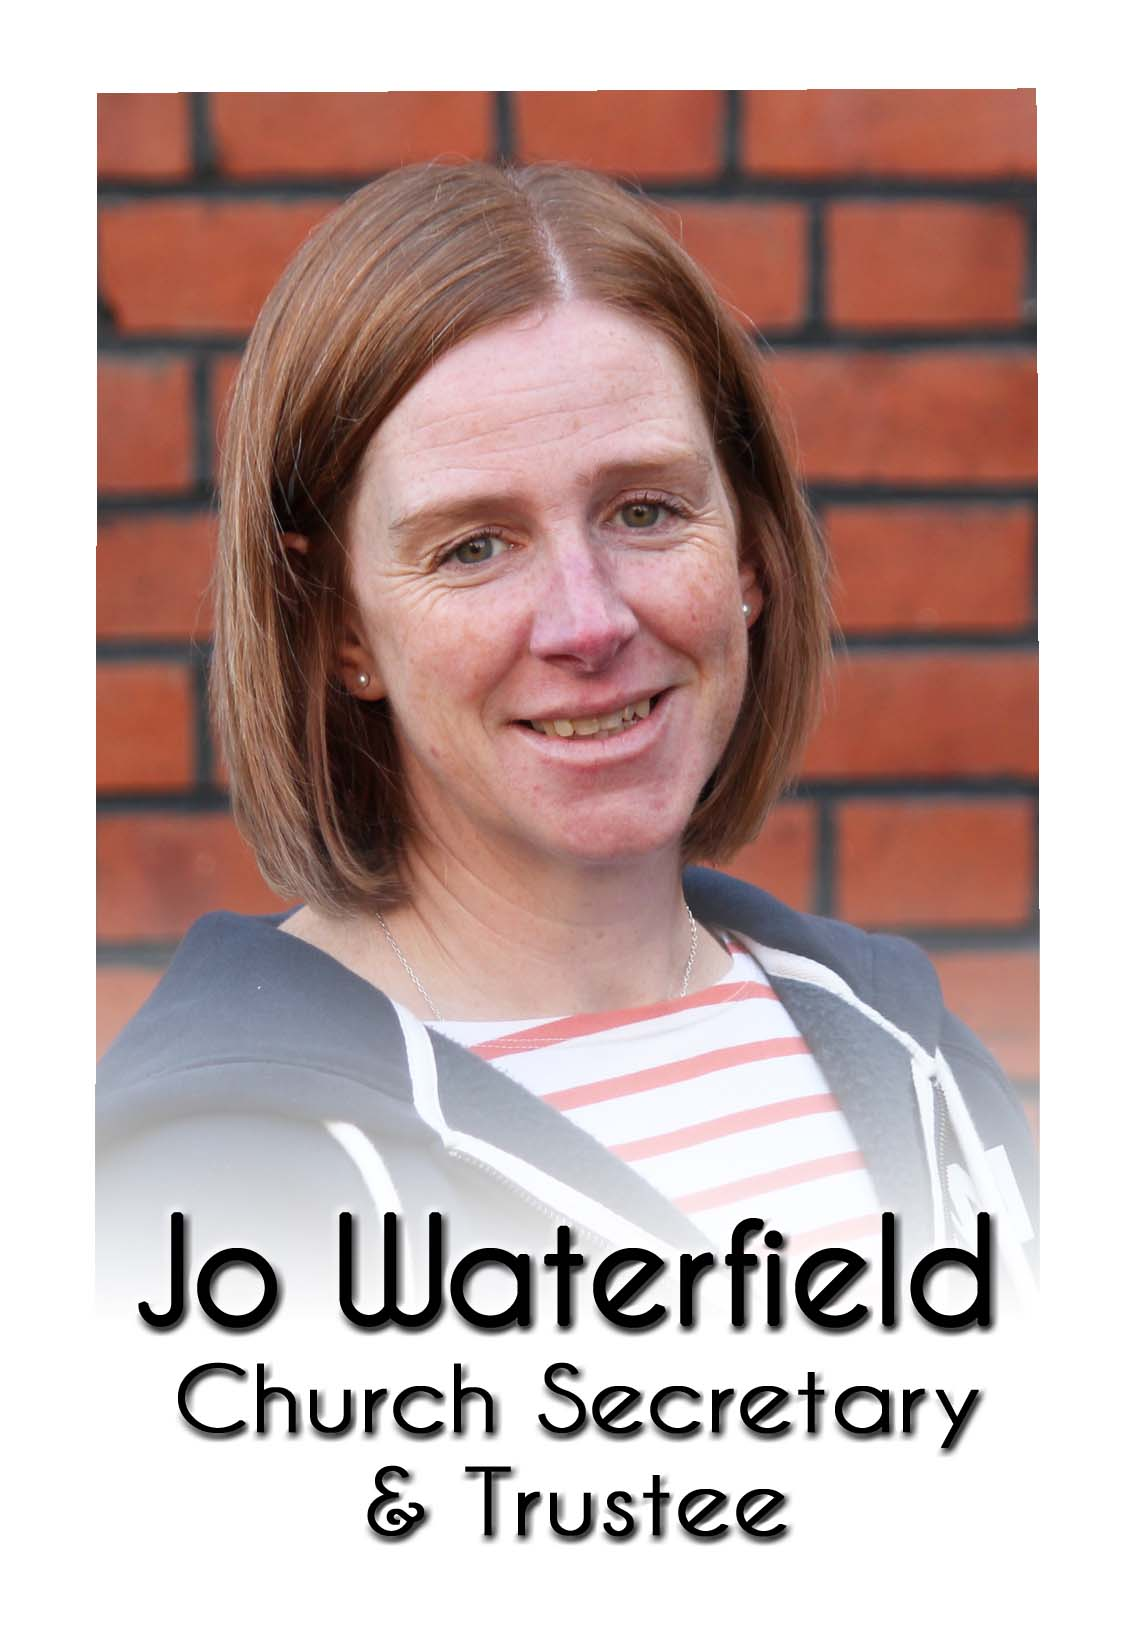 Jo Waterfield labelled